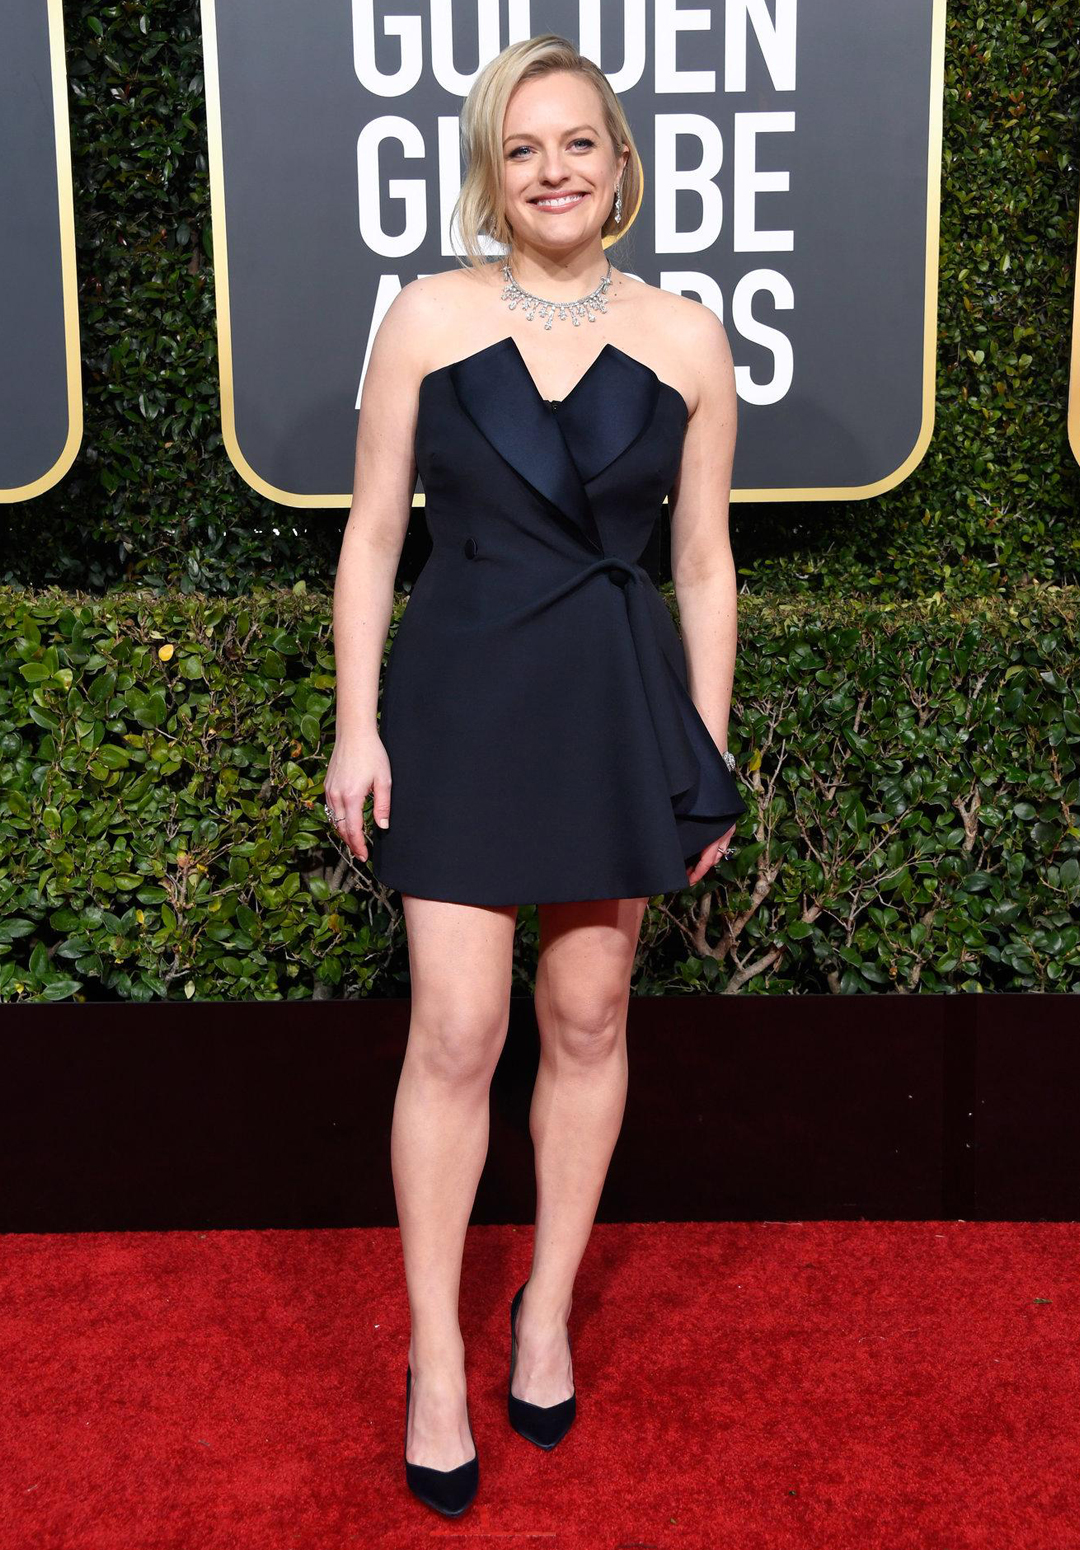 Elisabeth moss golden globes 2019 - LAUNCHING RAD IN SOLIDARITY for ACLU